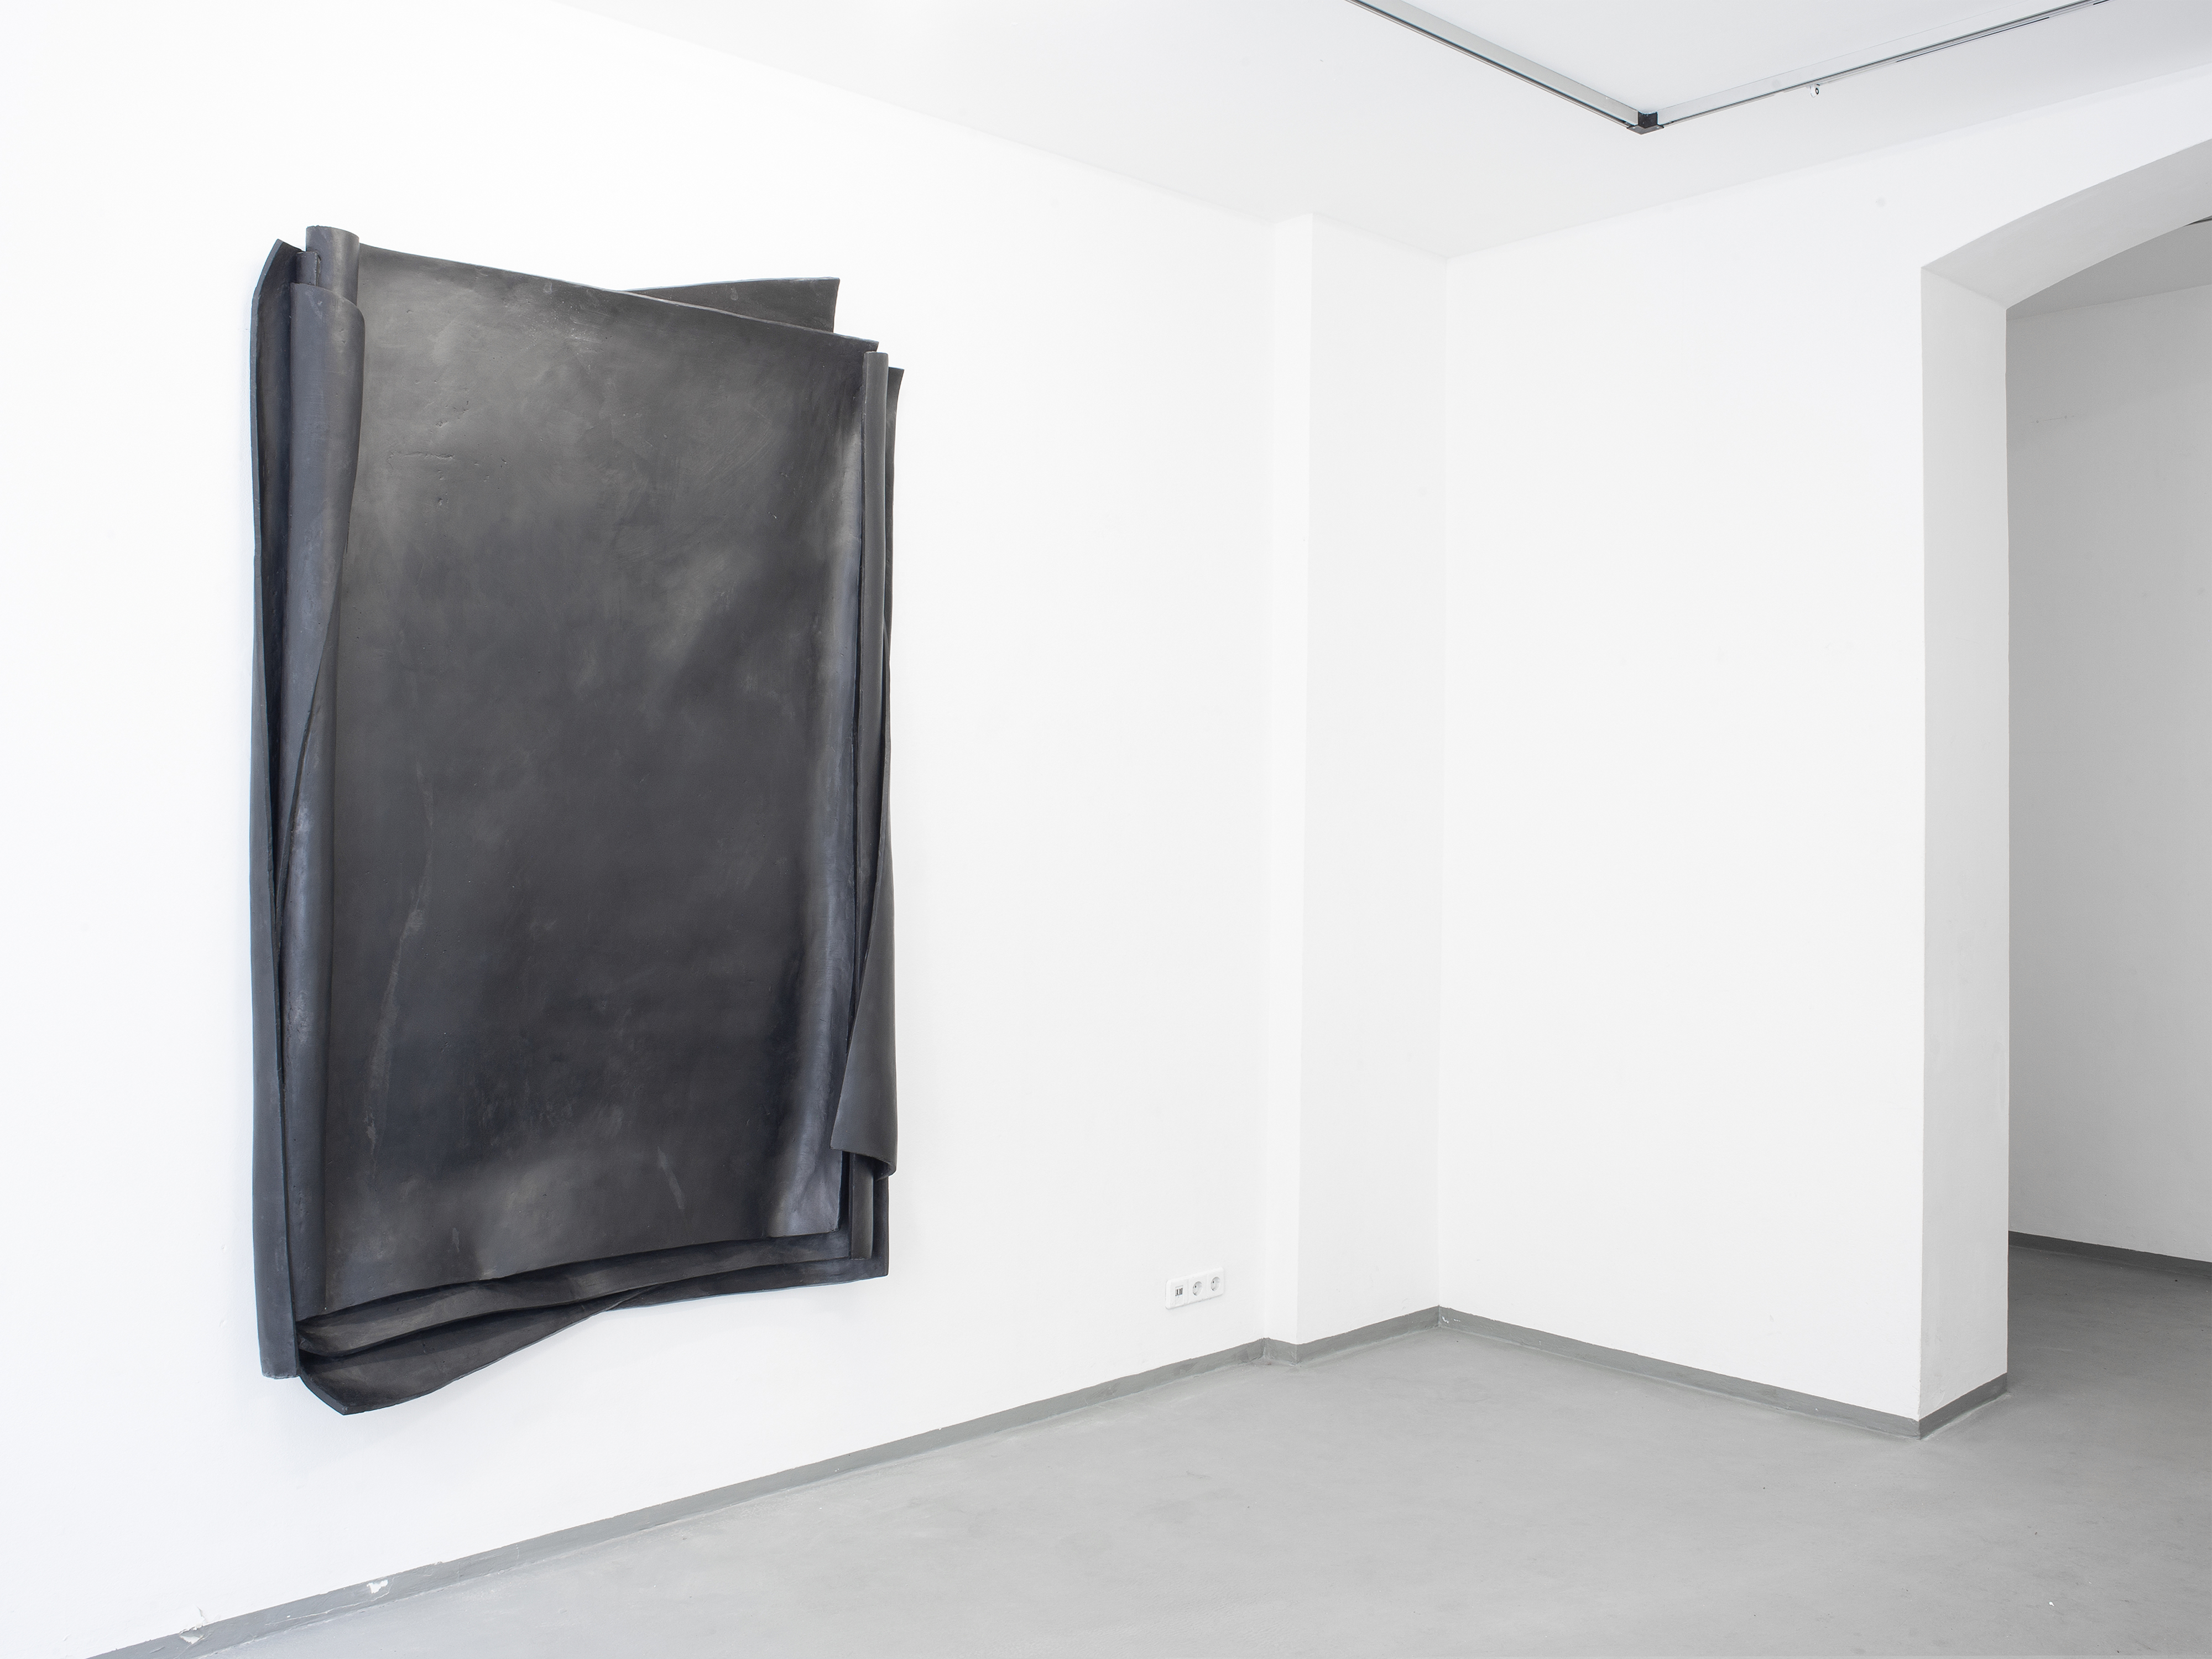 """The Photo is an Installation View from the exhibition """"Crucial Decisions"""" by Erik Andersen at Diskurs Berlin. It shows a blak sculpture titled """"Besser Vertikal 02"""" made in 2021."""